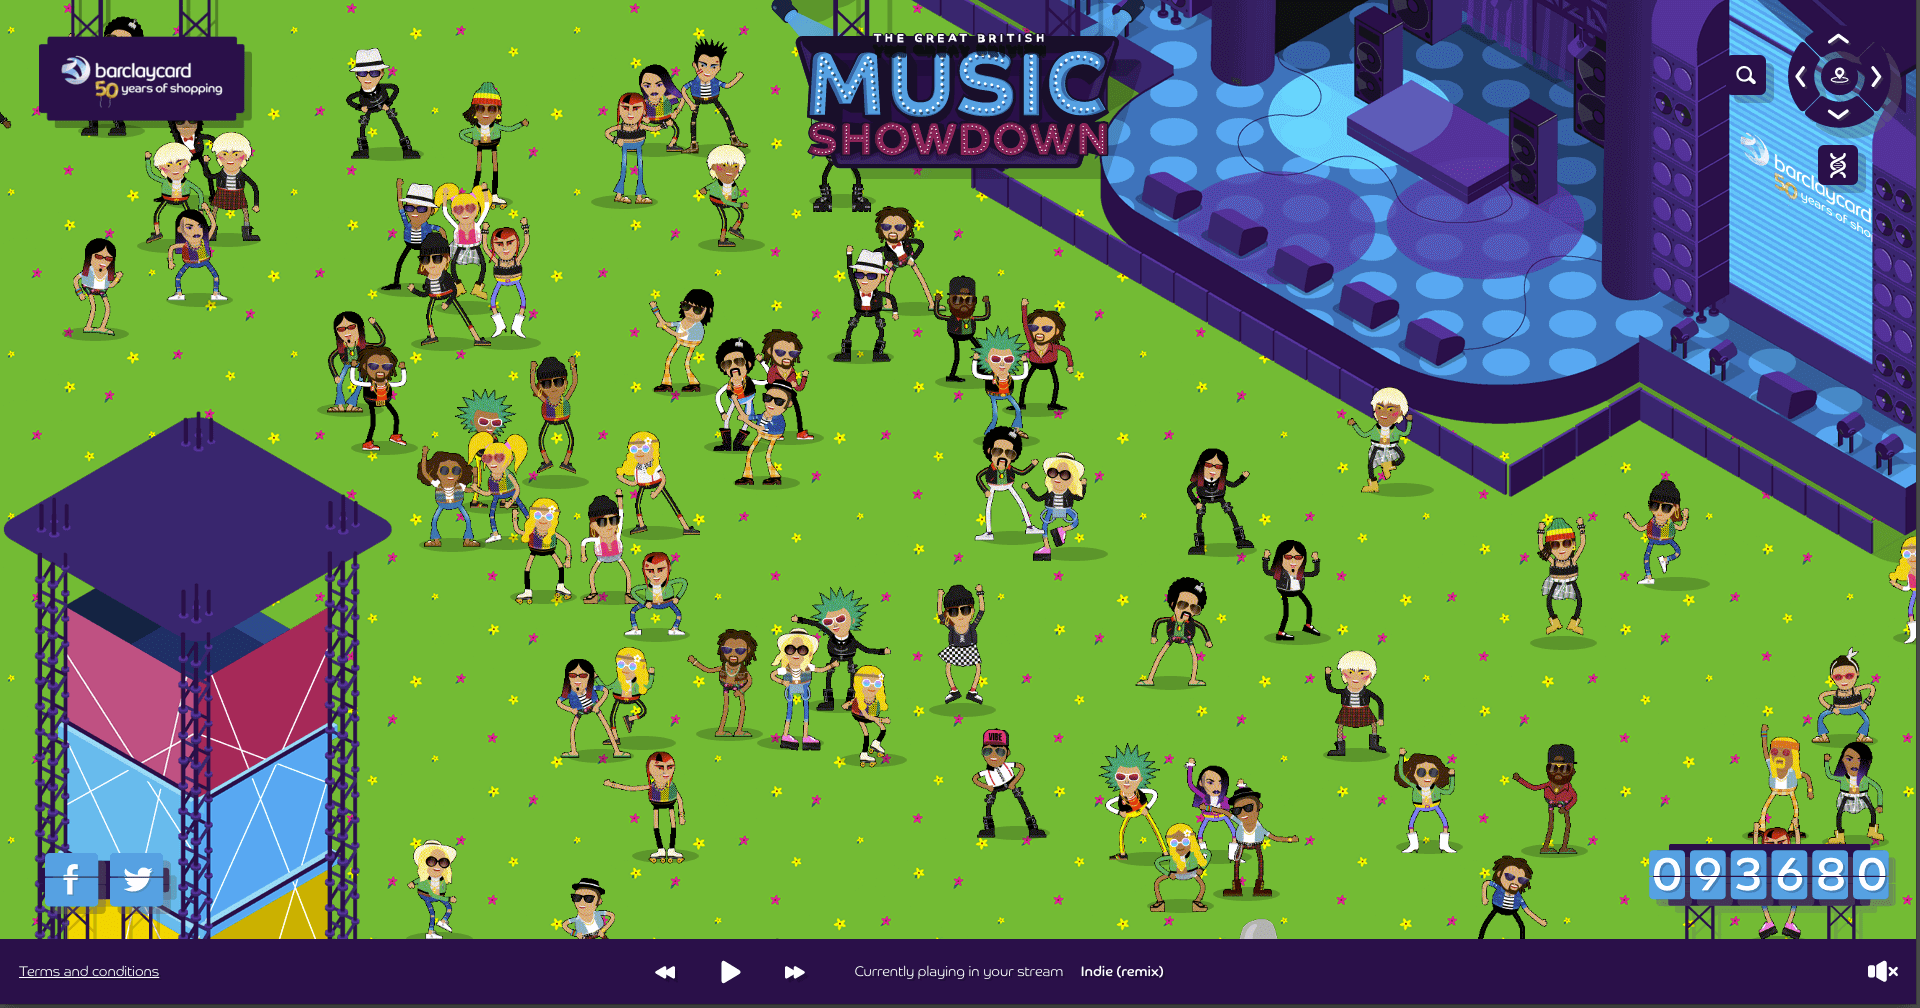 barclaycard-musicshowdown-screen-012